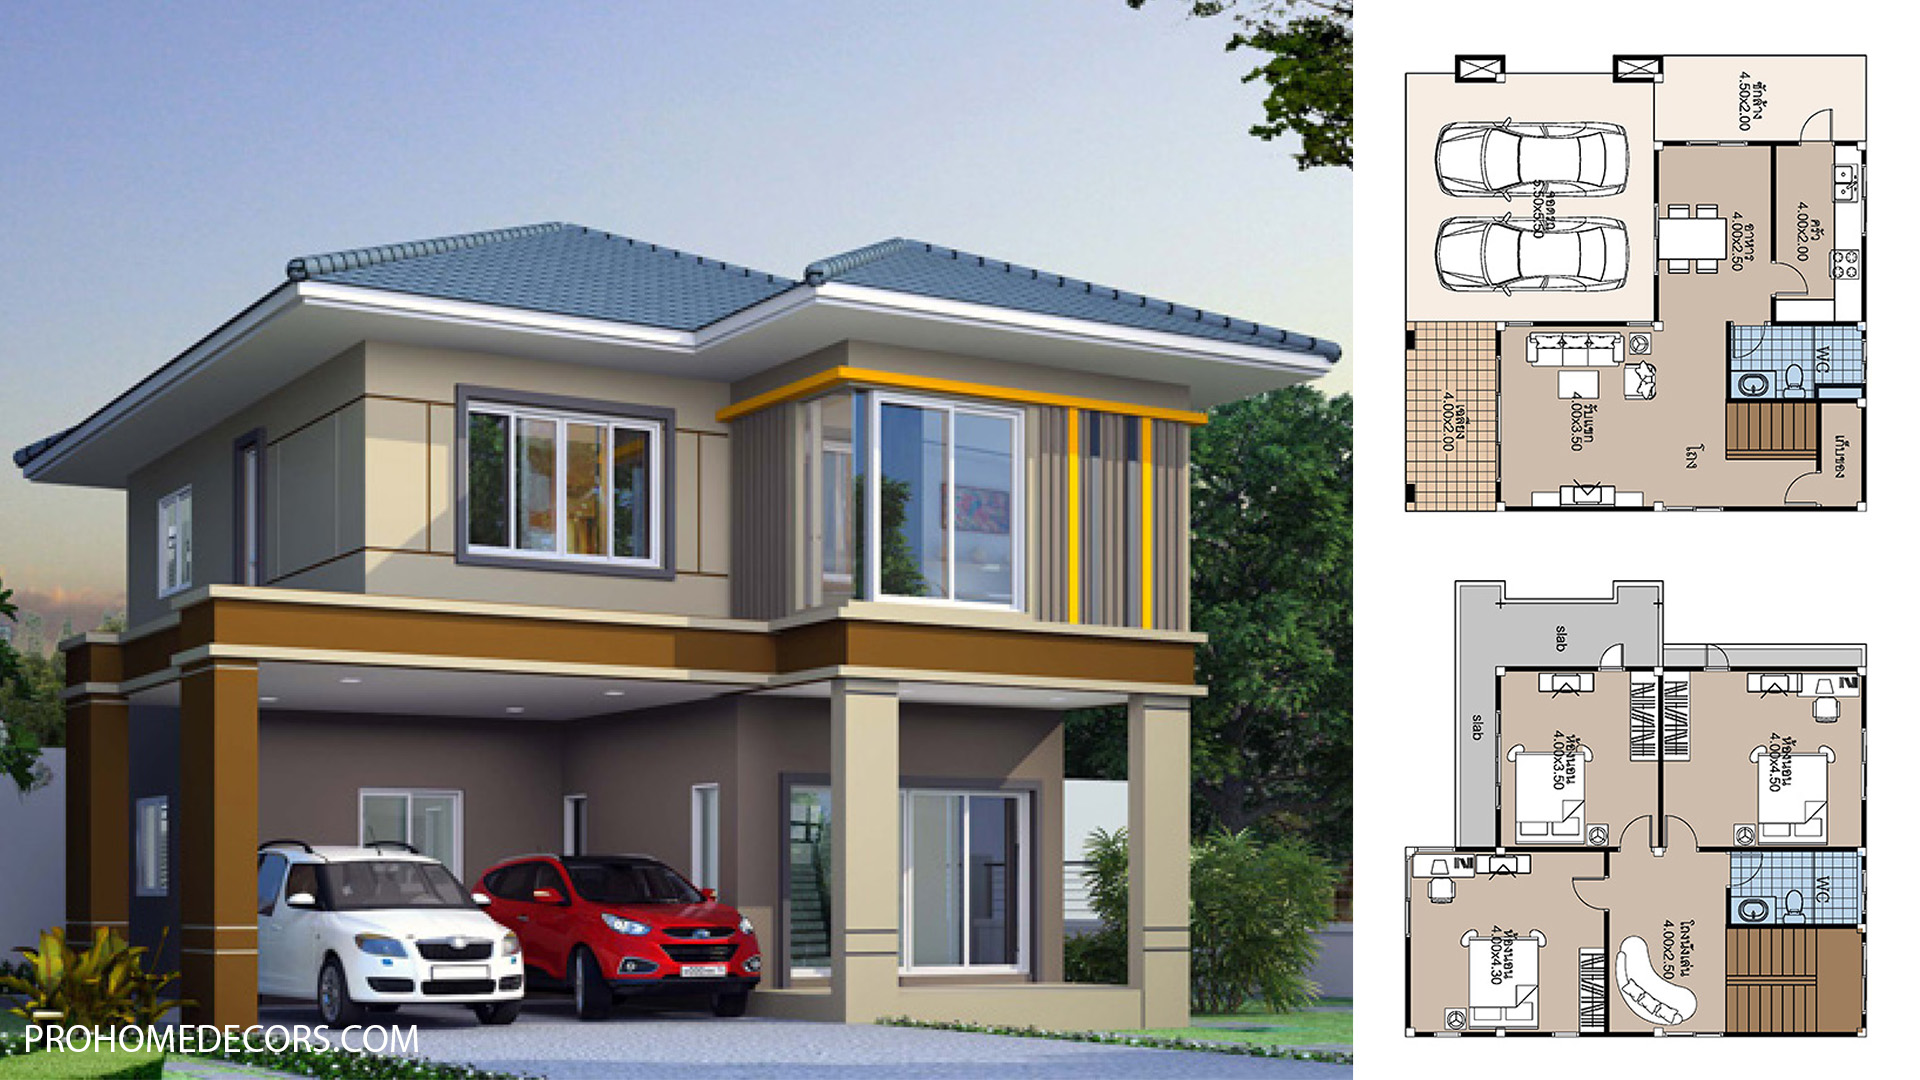 House Plans 10×10 with 3 Bedrooms